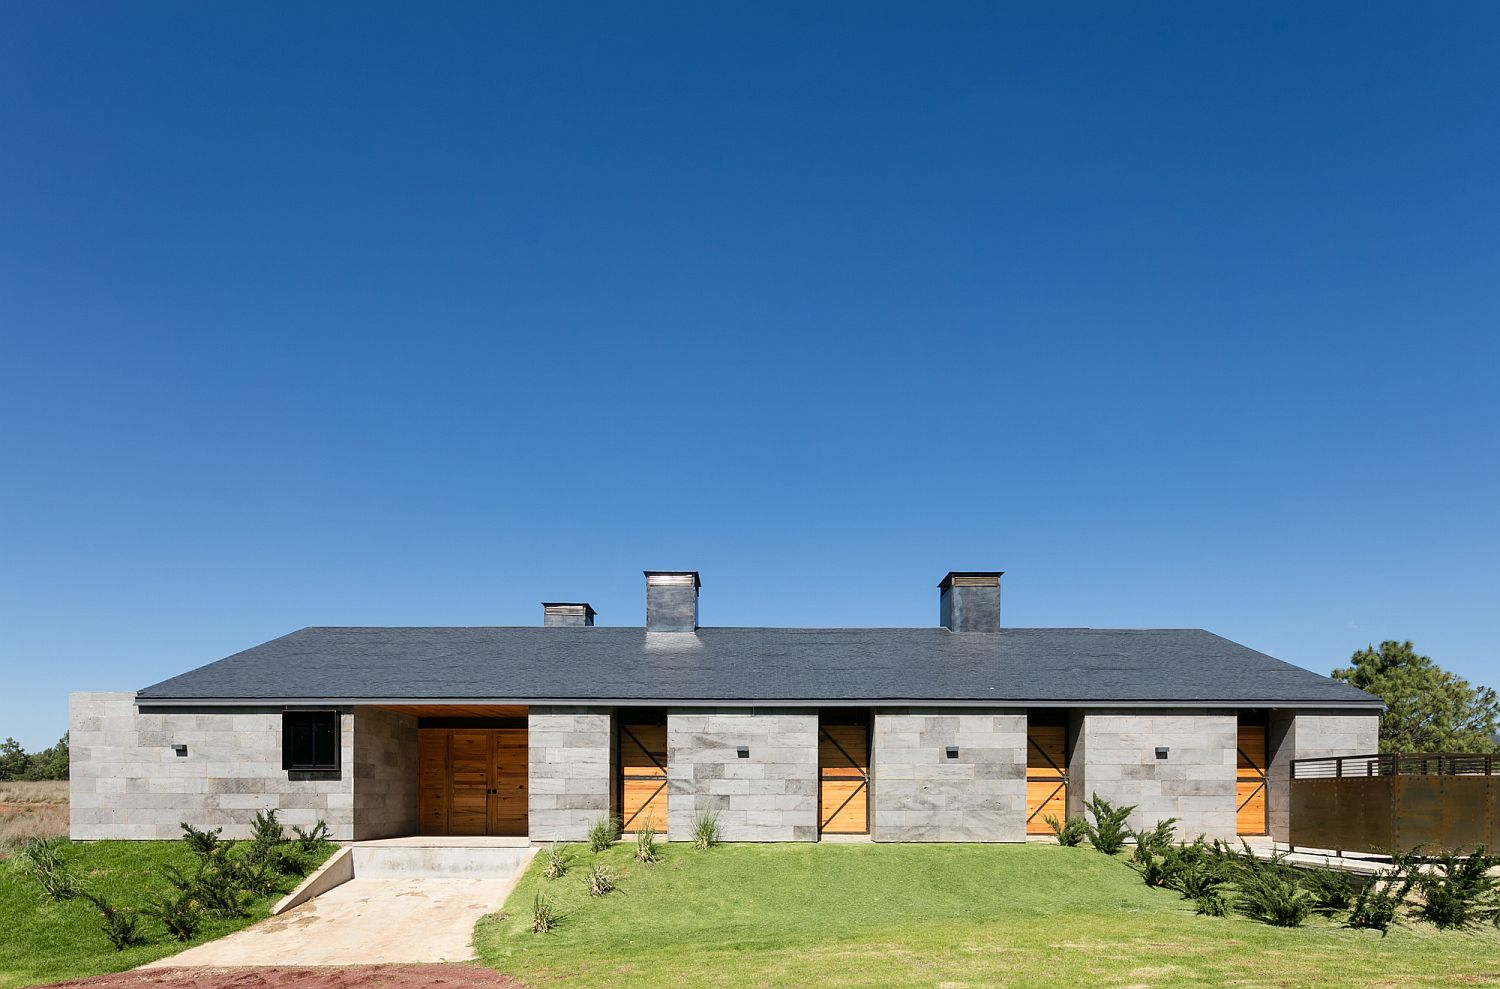 Modern Mexican ranch house with a gray exterior in volcanic rock